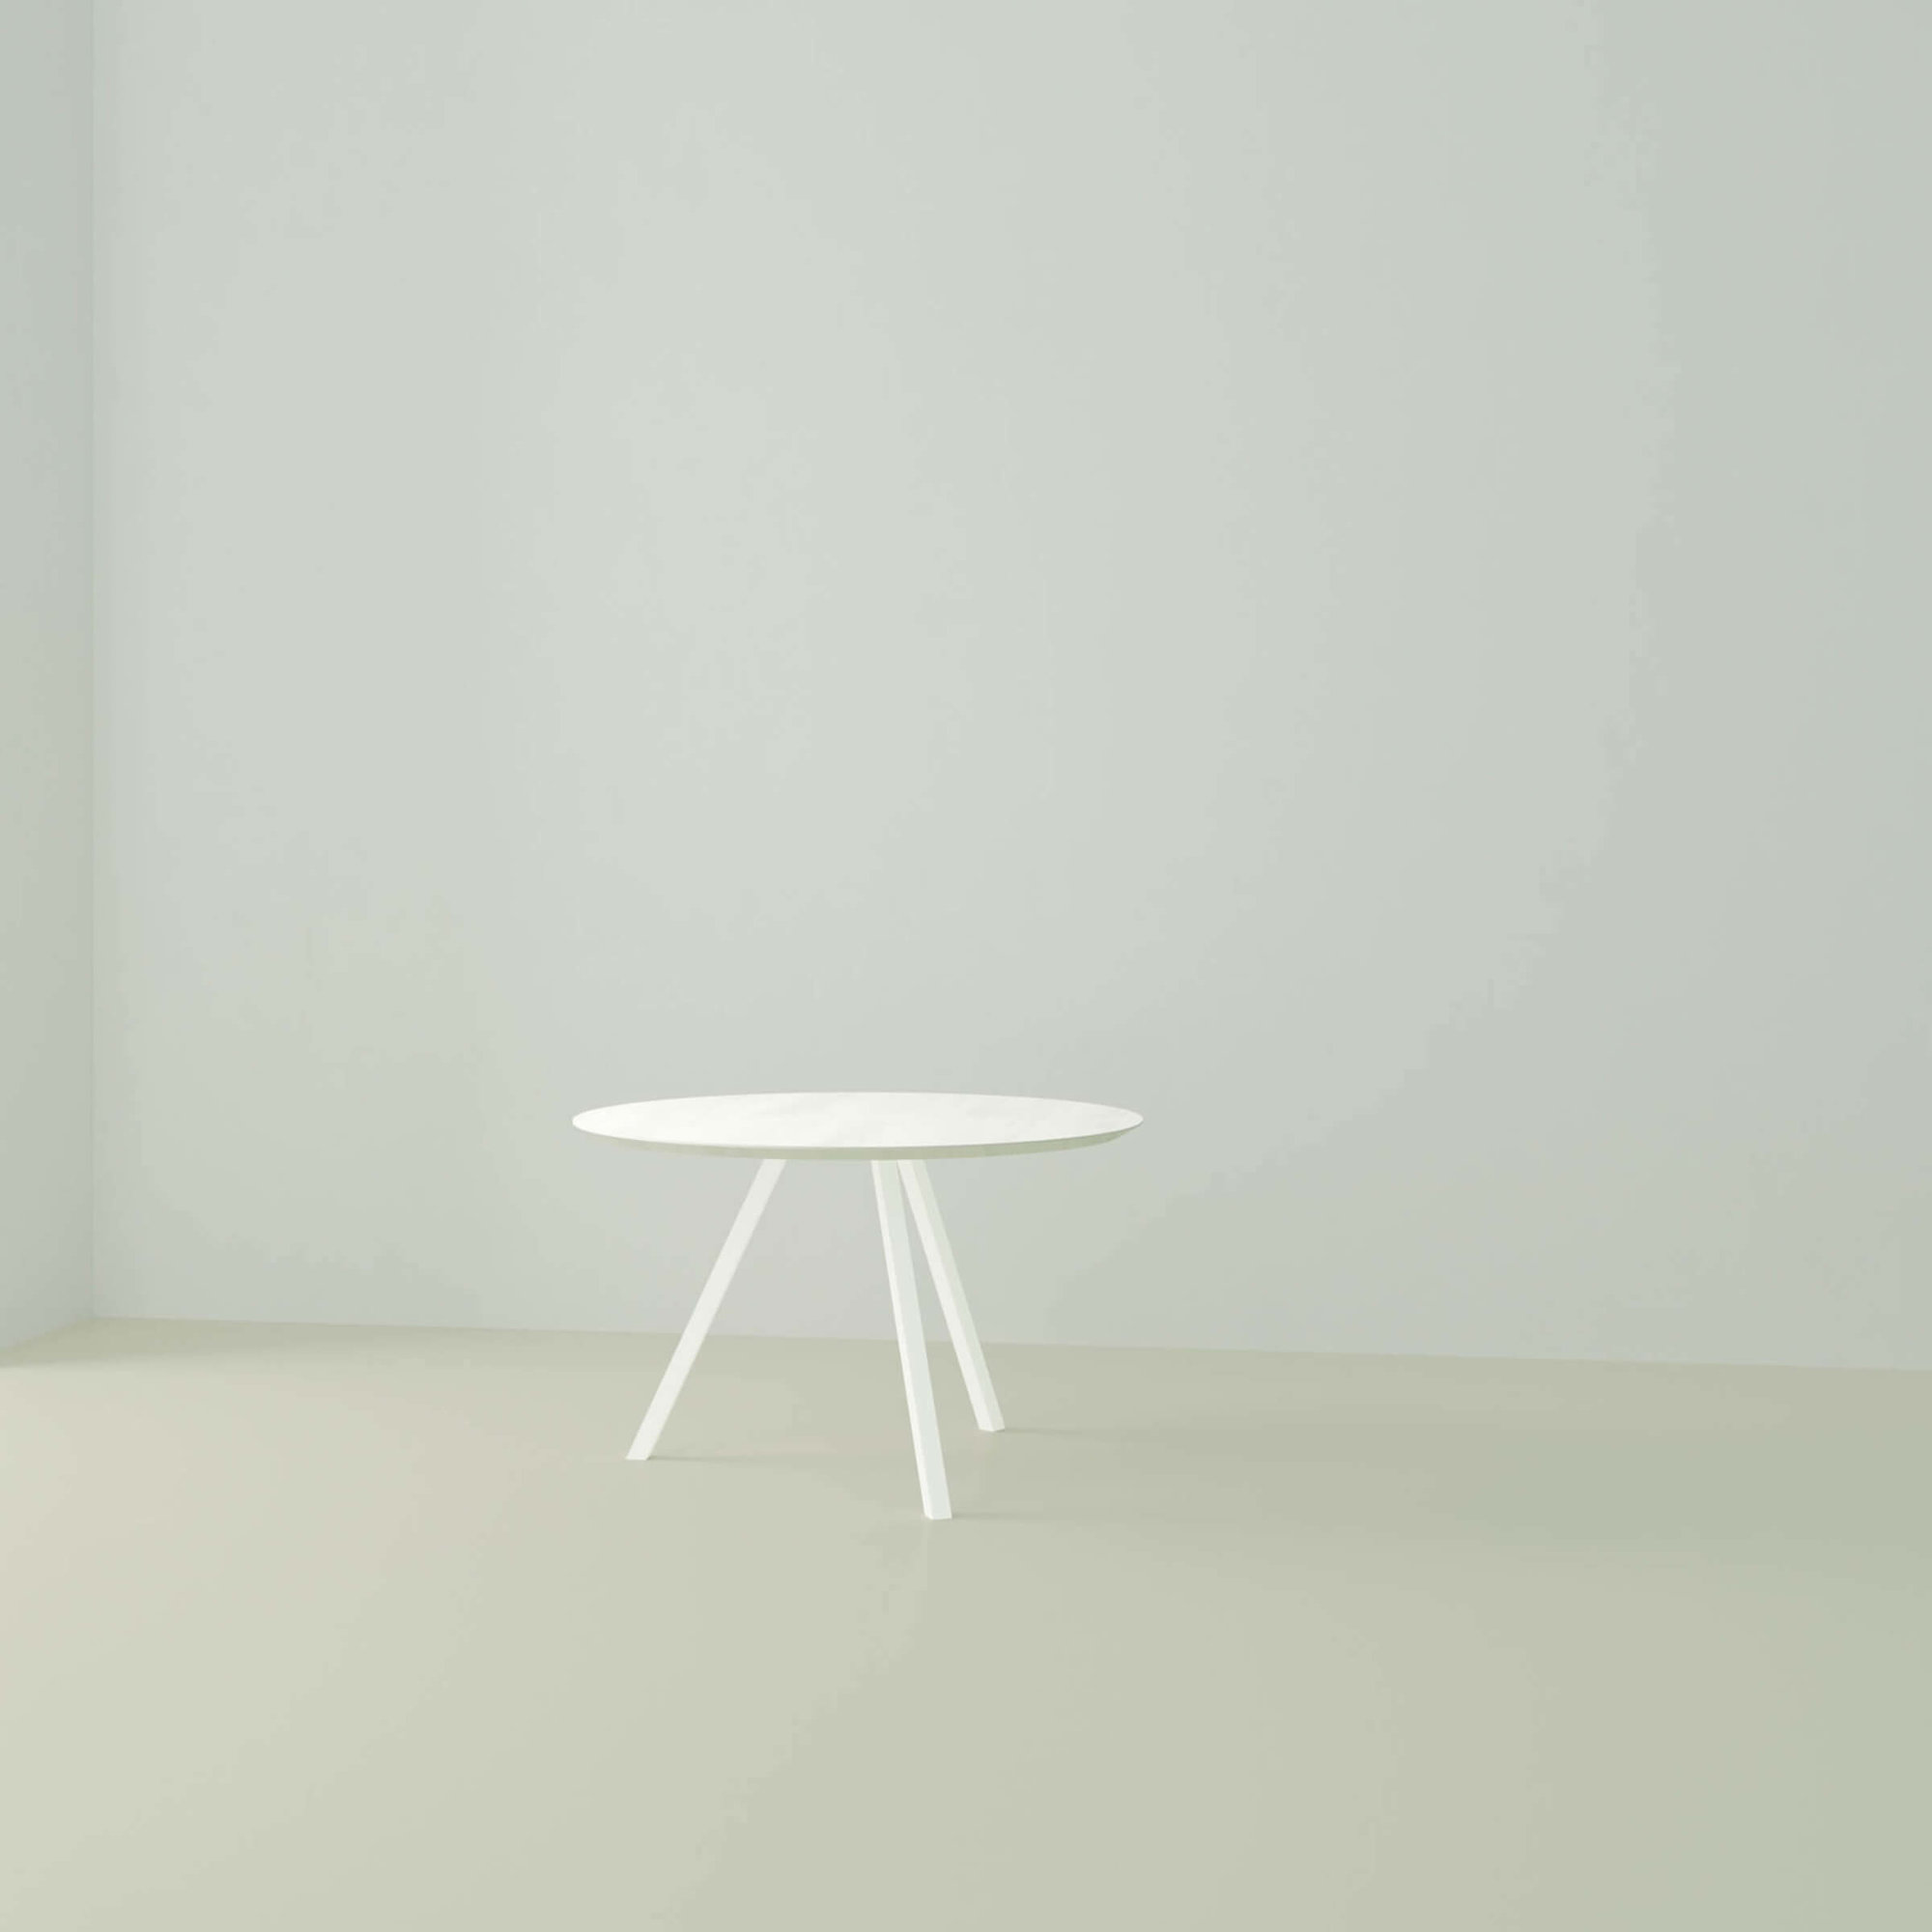 Ronde design tafel op maat | New Classic Tripod Steel white powdercoating | Oak white lacquer | Studio HENK | Listing_image_1